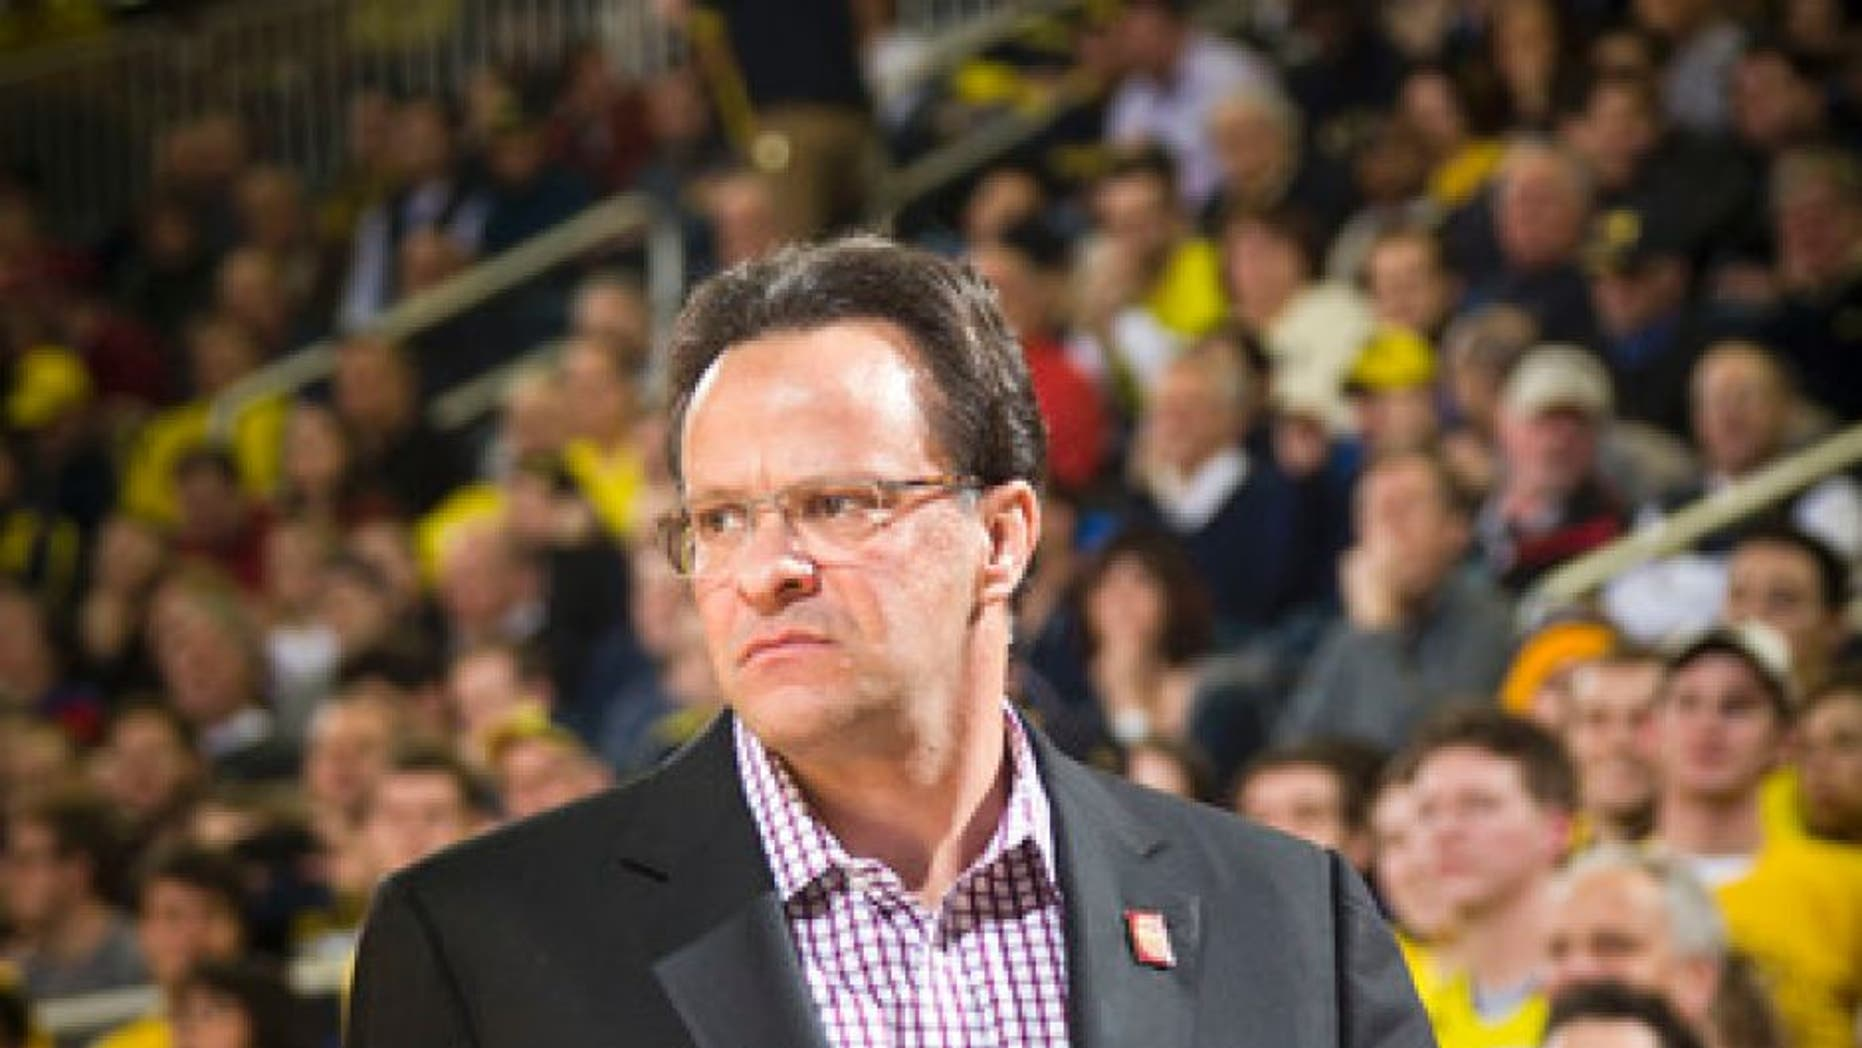 FILE - In this Feb. 2, 2016, file photo, Indiana head coach Tom Crean walks the court beside his bench in the first half of an NCAA college basketball game against Michigan at Crisler Center in Ann Arbor, Mich. Crean has been fired after five seasons. Athletic director Fred Glass announced the decision Thursday, March 16, 2017, as the NCAA Tournament was beginning. (AP Photo/Tony Ding, File)